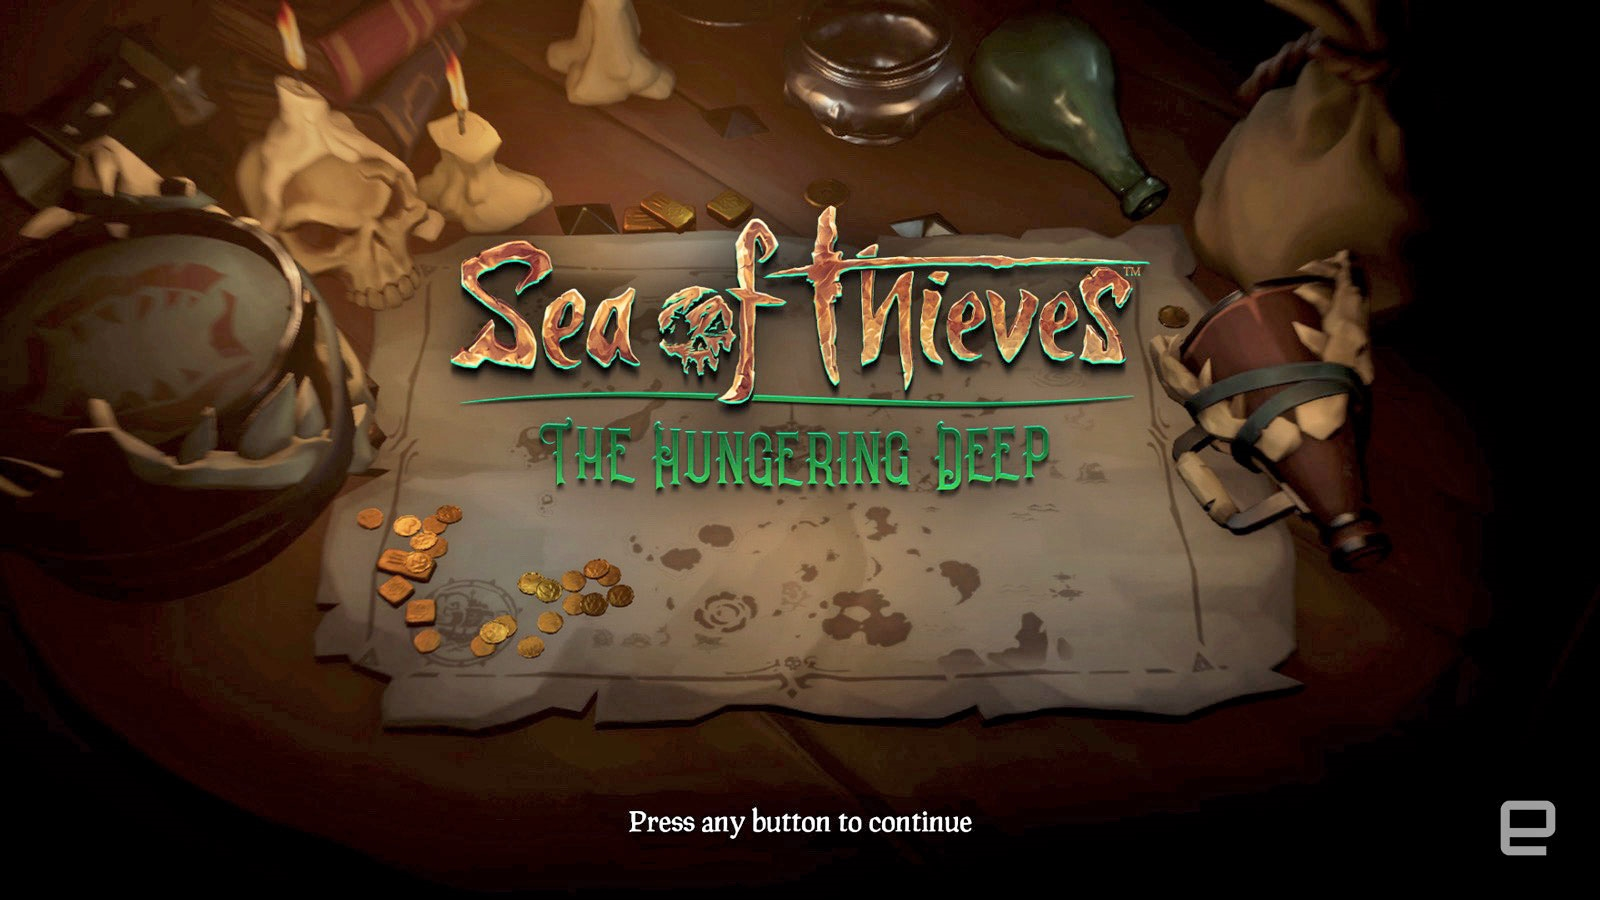 The debut 'Sea of Thieves' campaign almost makes it fun again | DeviceDaily.com